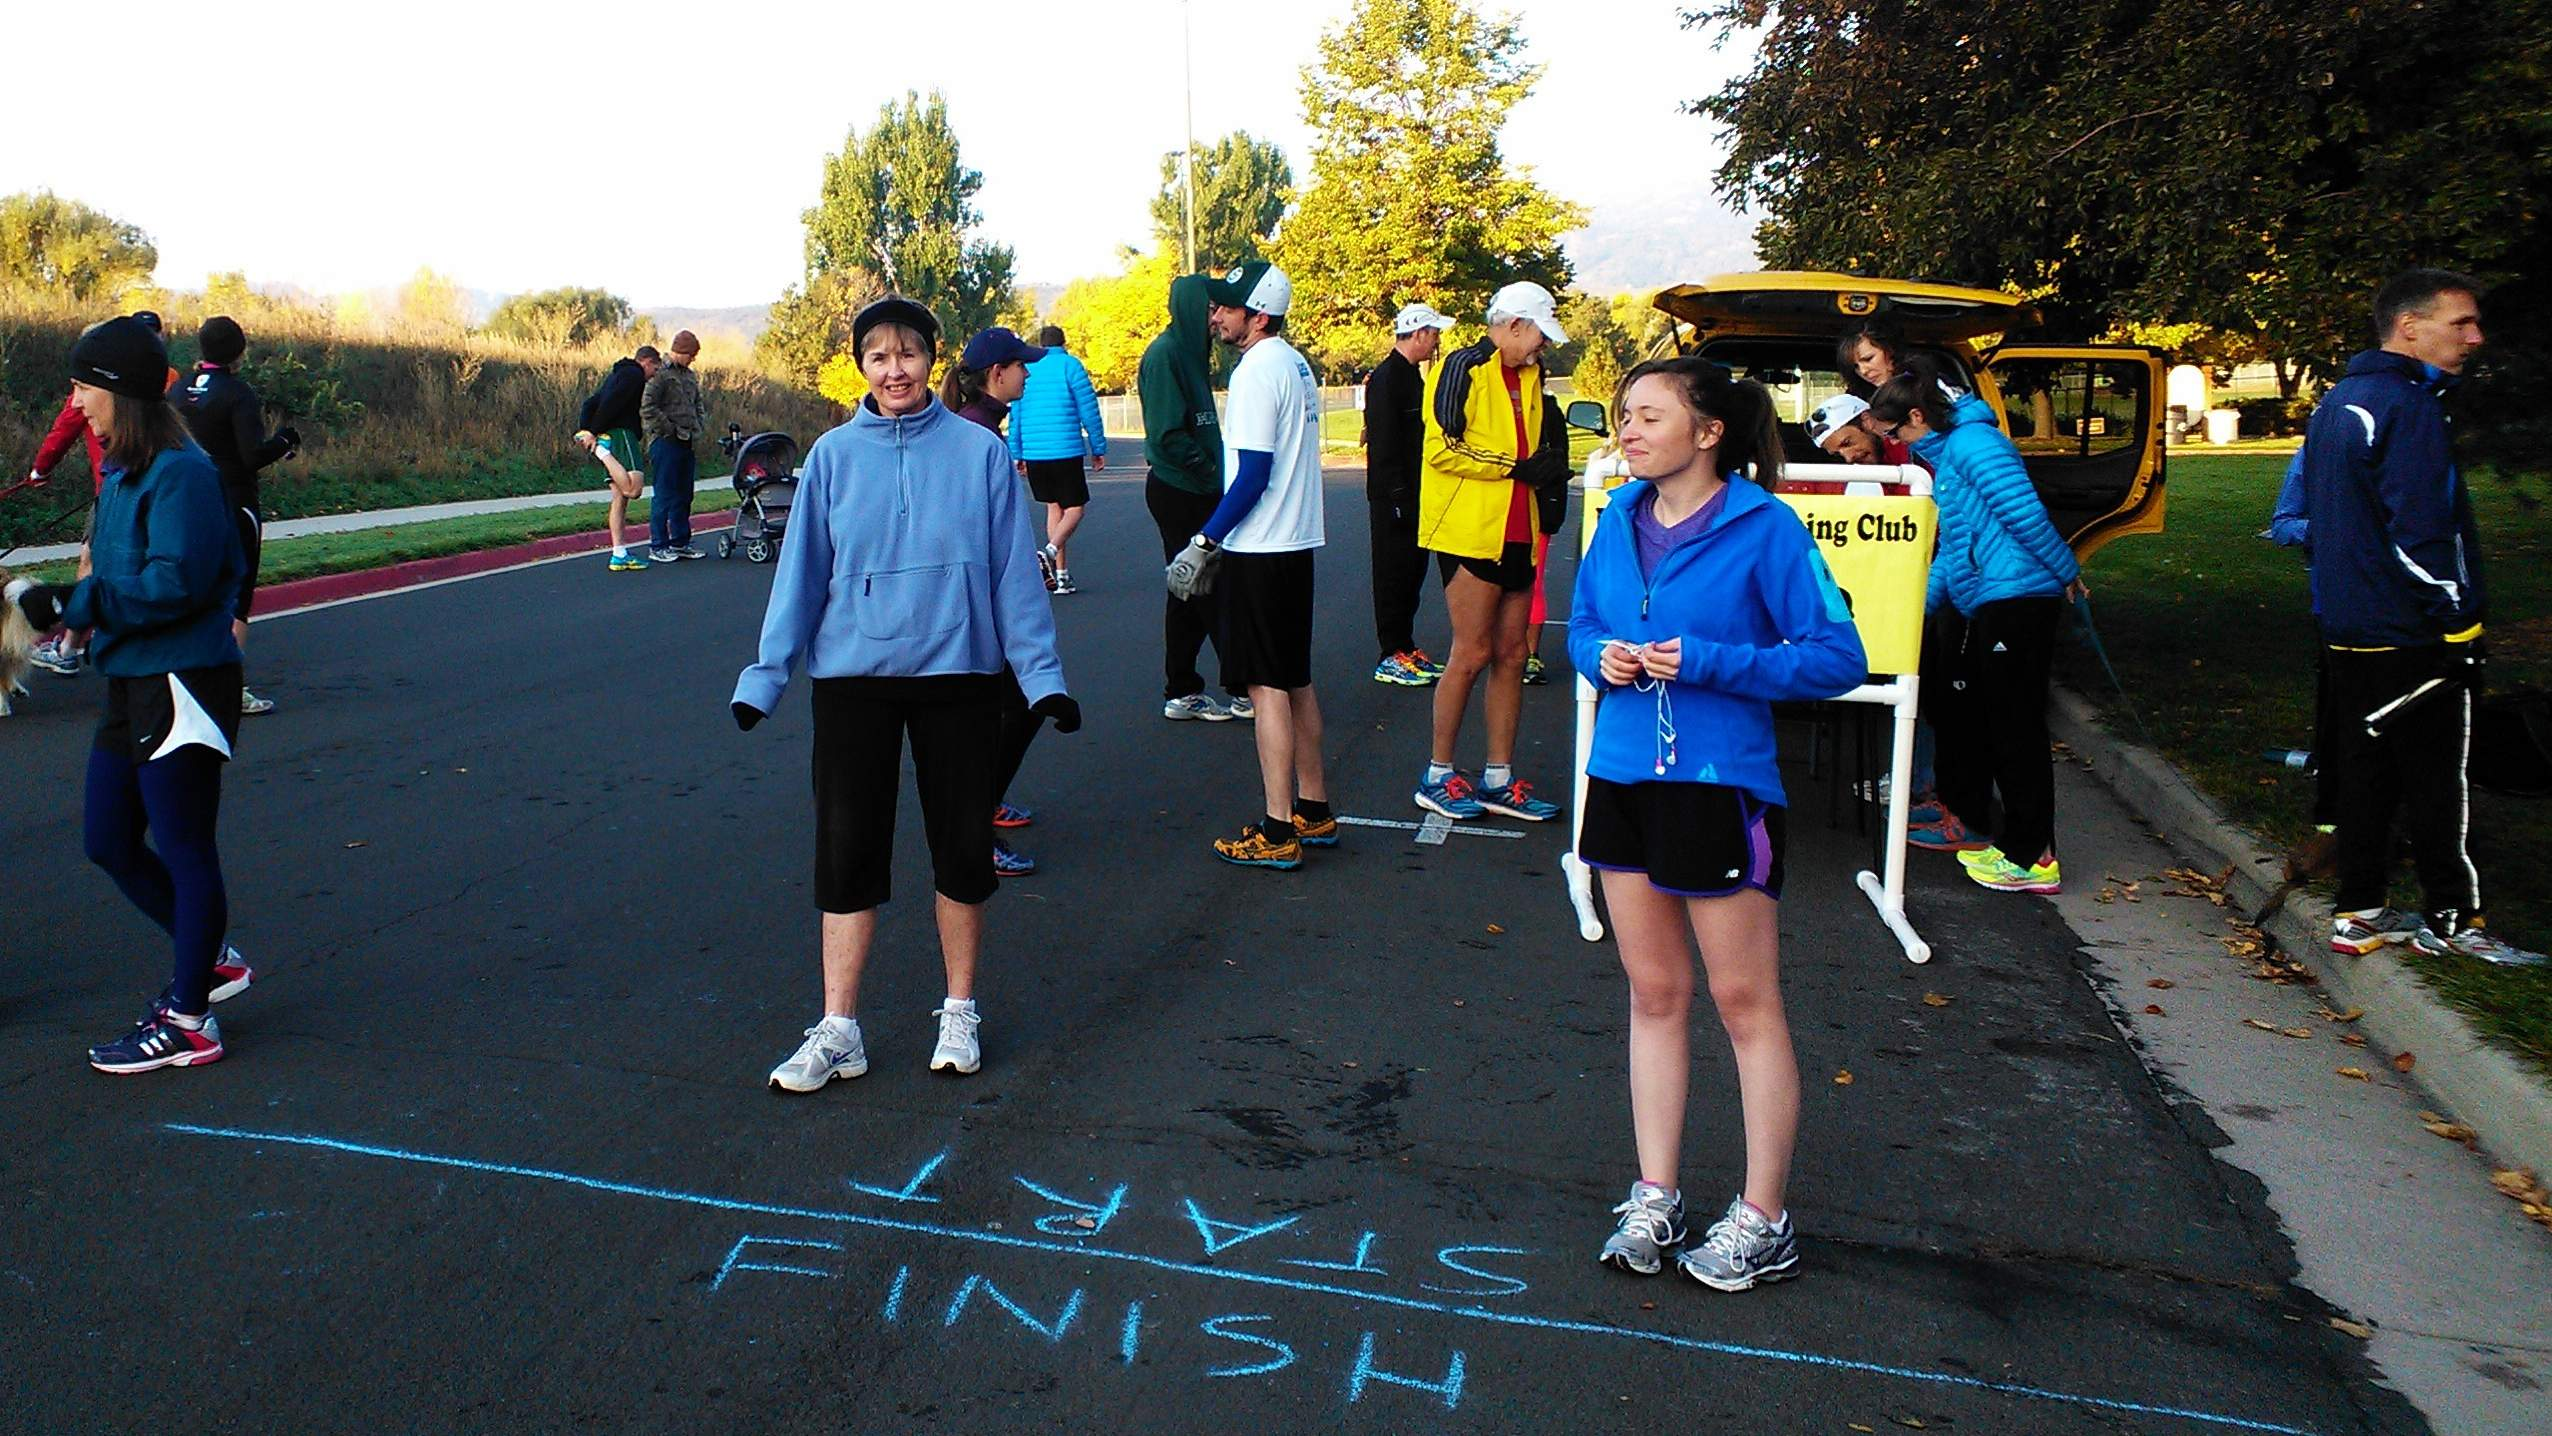 Runners lining up for their turn at the start of the Rolland Moore Park 4k Tortoise & Hare race.